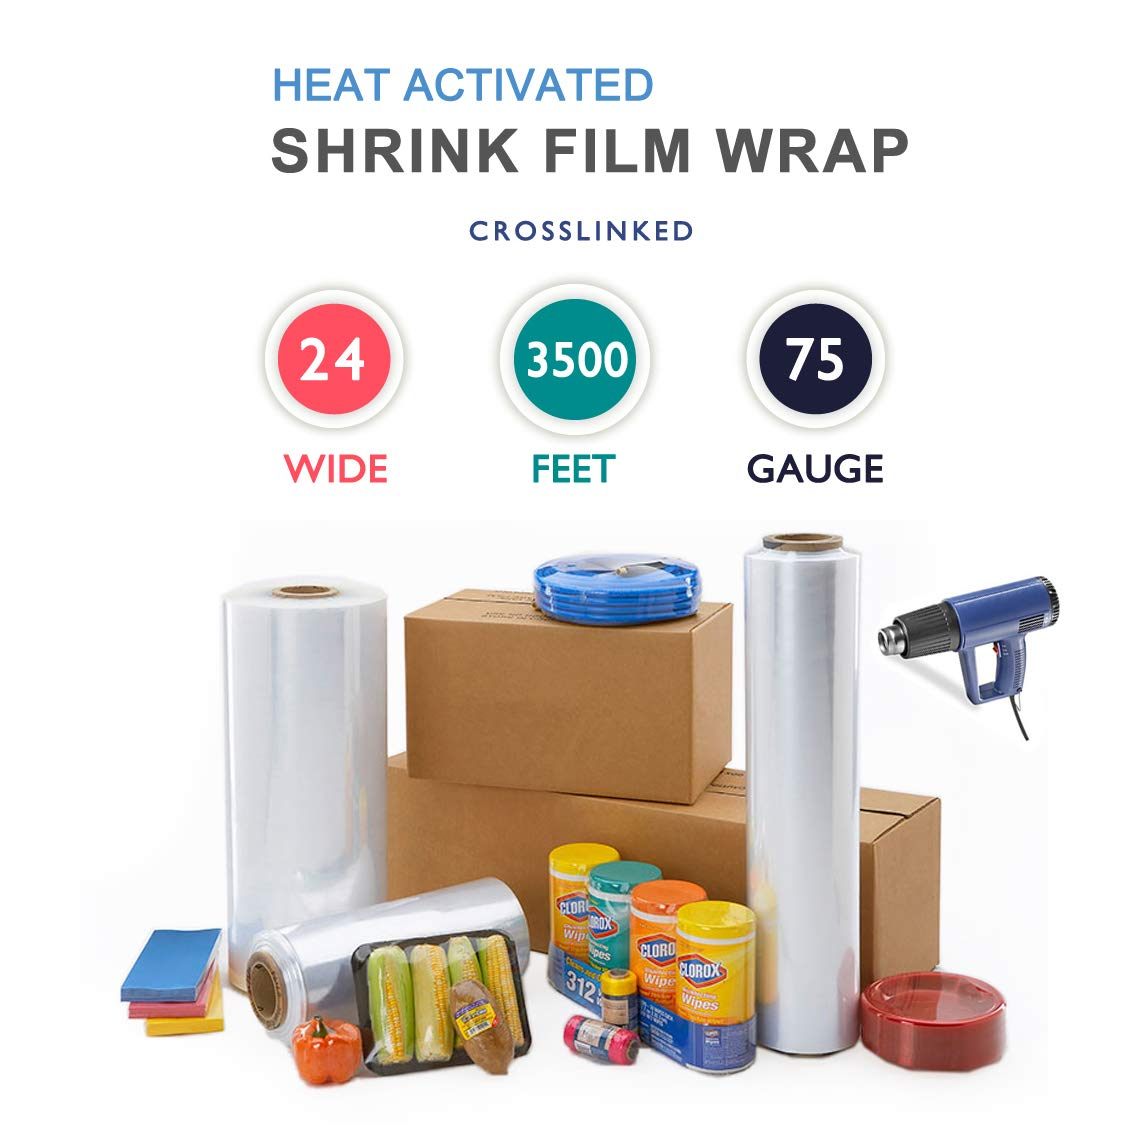 24'' x 3500 ft. Heat Shrink Film Wrap Strong Centerfold Polyolefin 75 Gauge Cross-Linked Heat Activated Shrink Wrap, 1 Roll